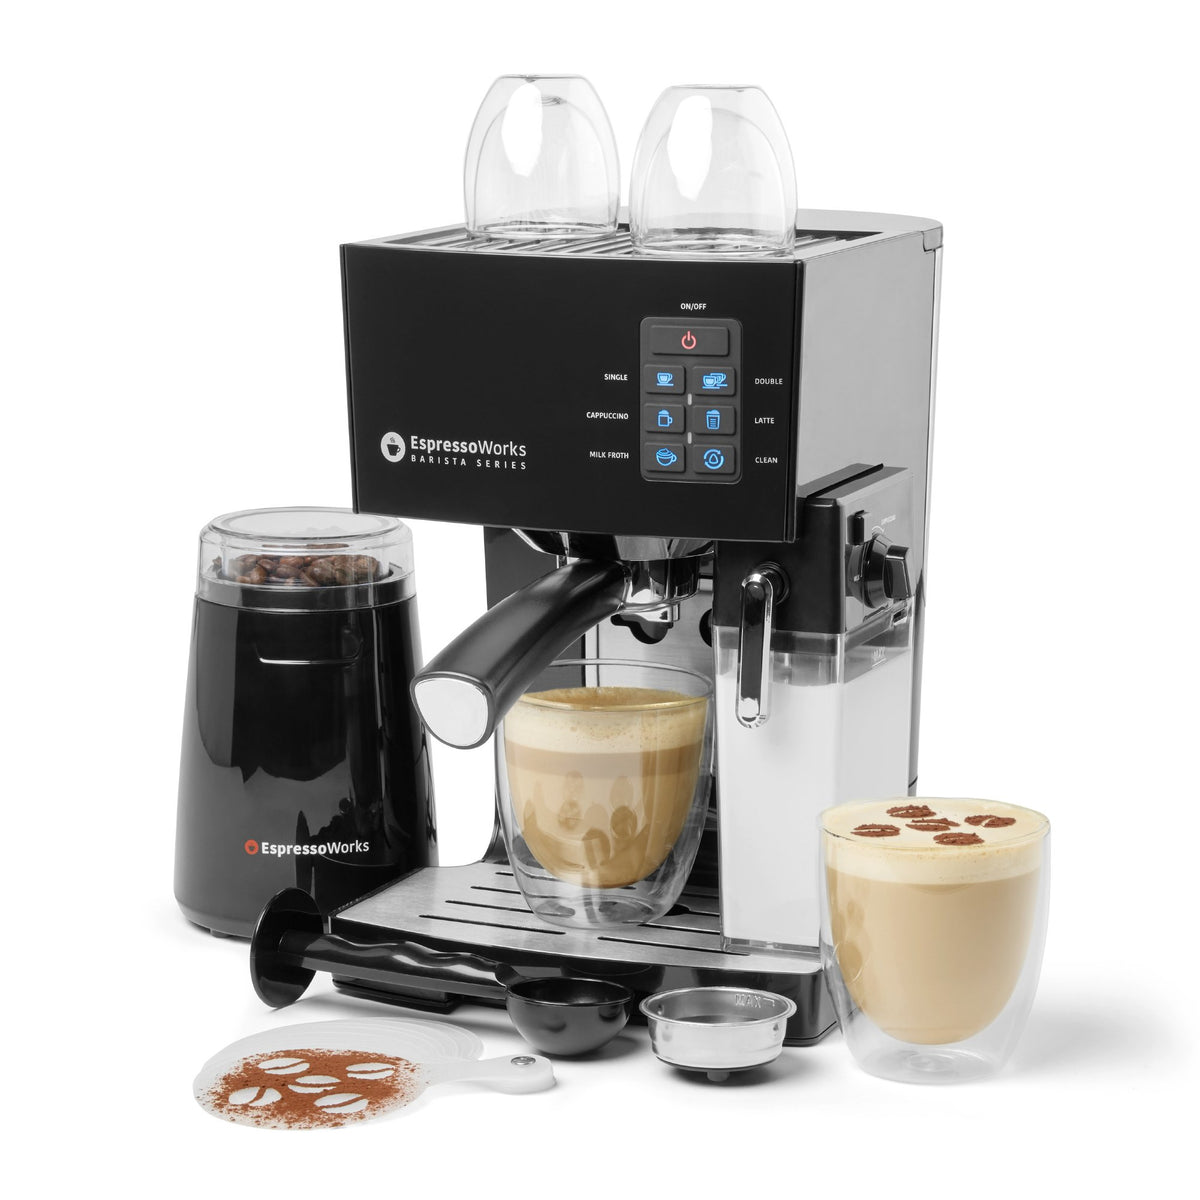 Replacement Water Tank only compatible with the EspressoWorks 10pc 19-bar Espresso and Cappuccino Maker Set